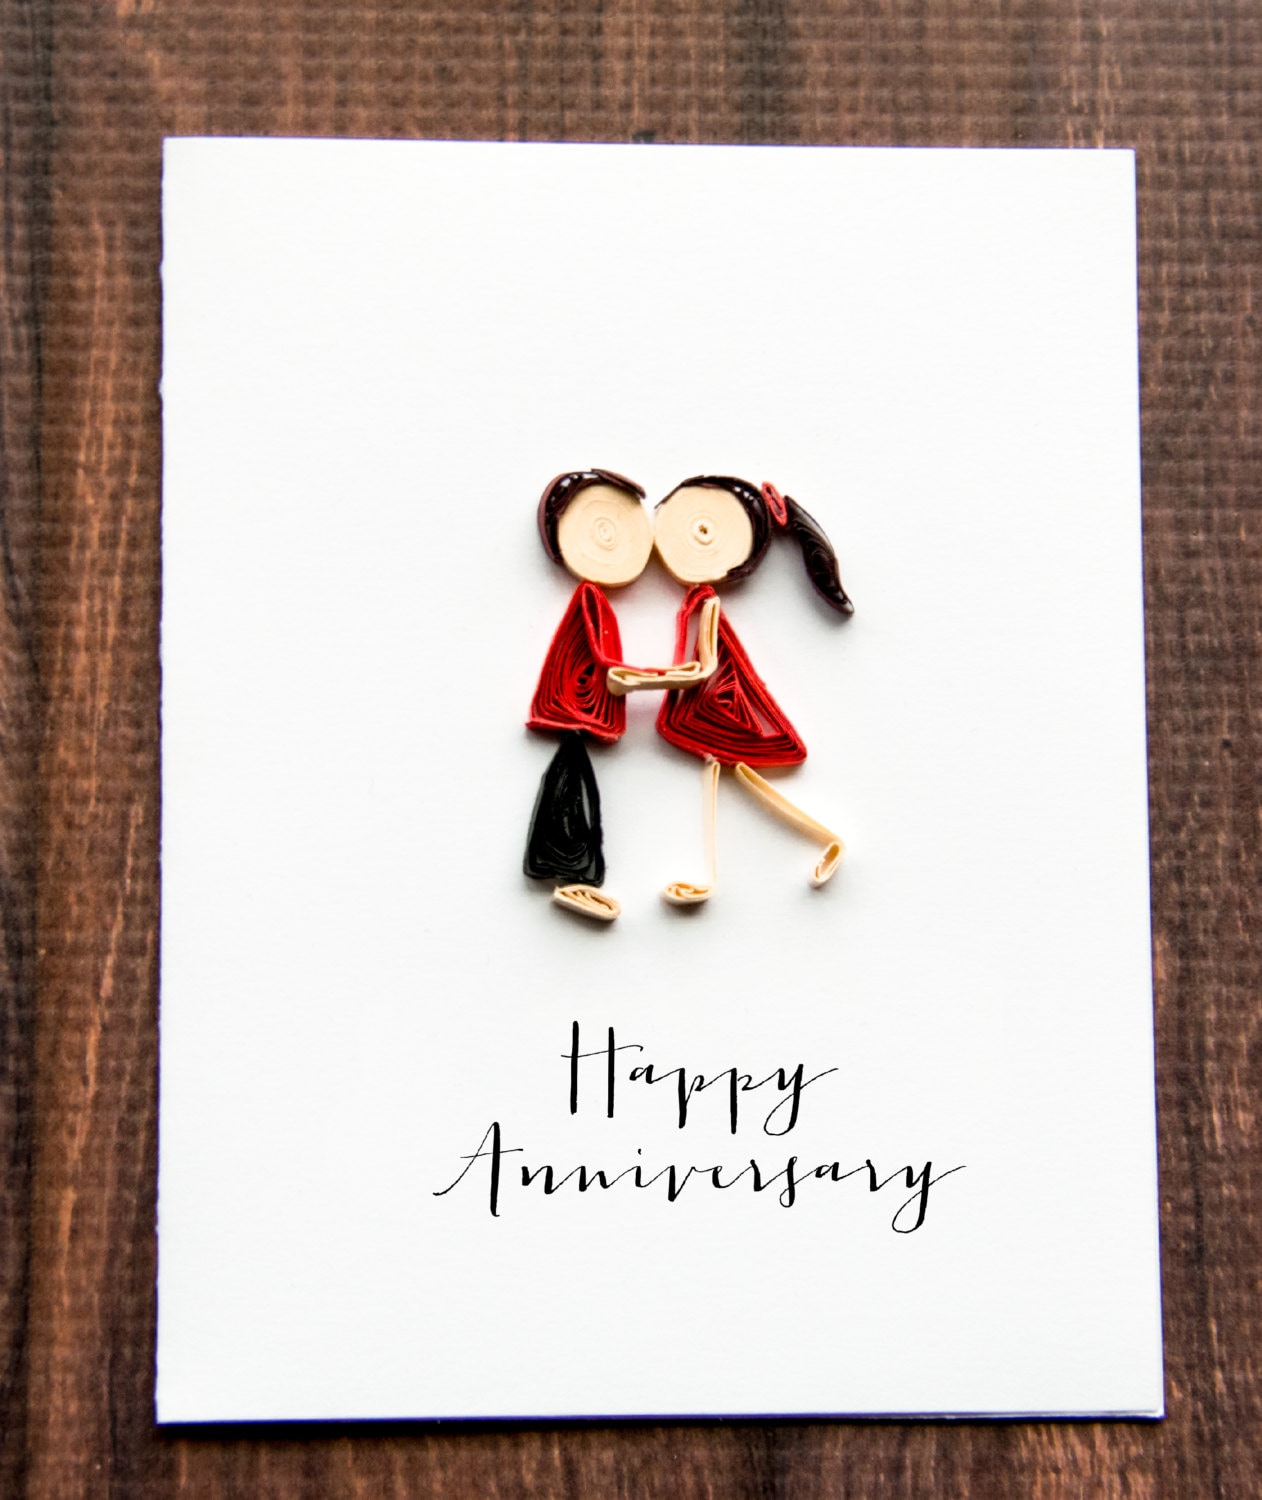 funny anniversary card wedding anniversary greeting marriage